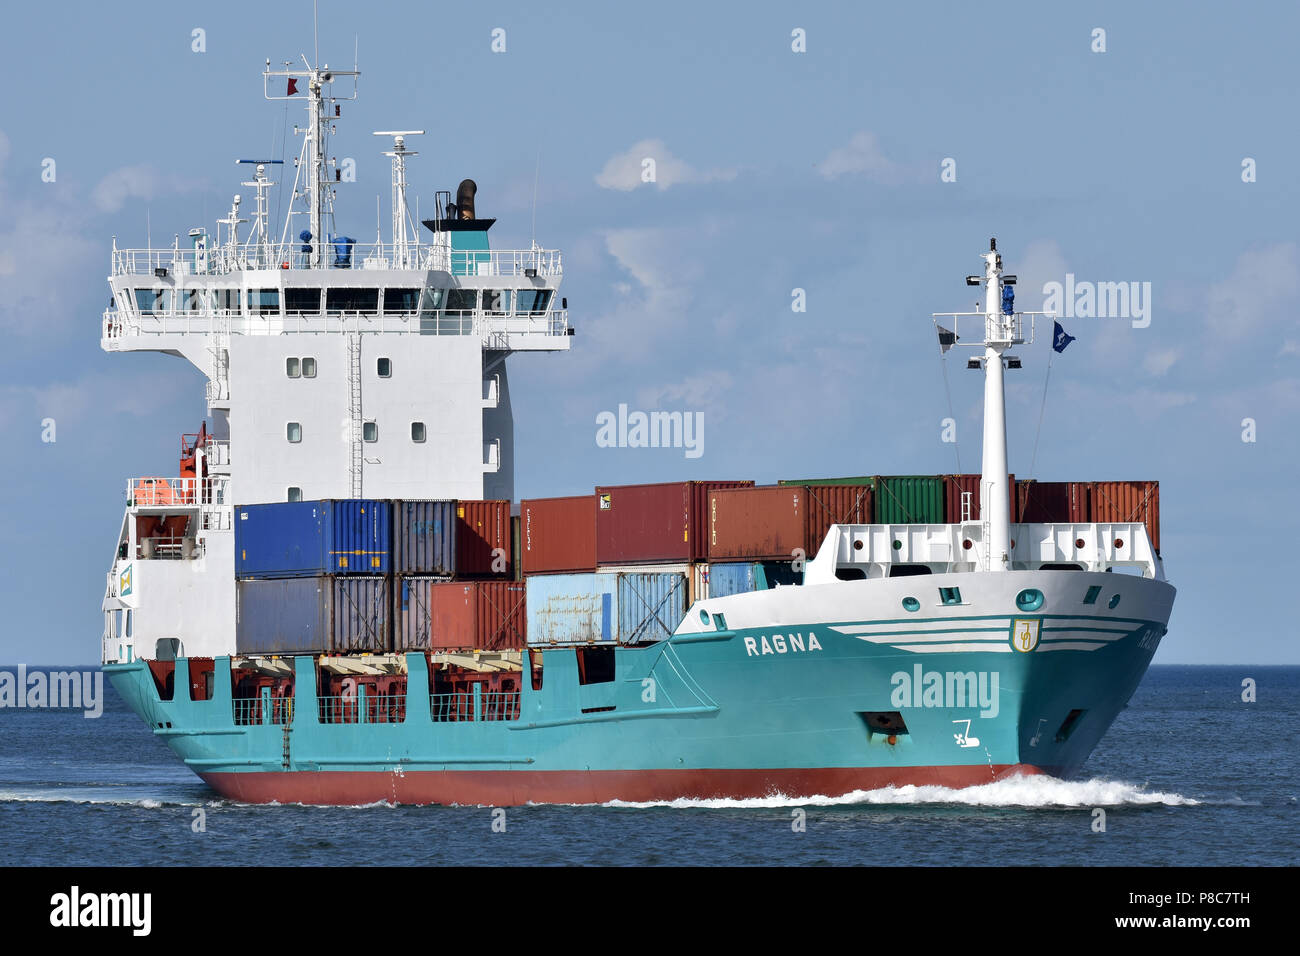 Feedervessel Ragna Stock Photo